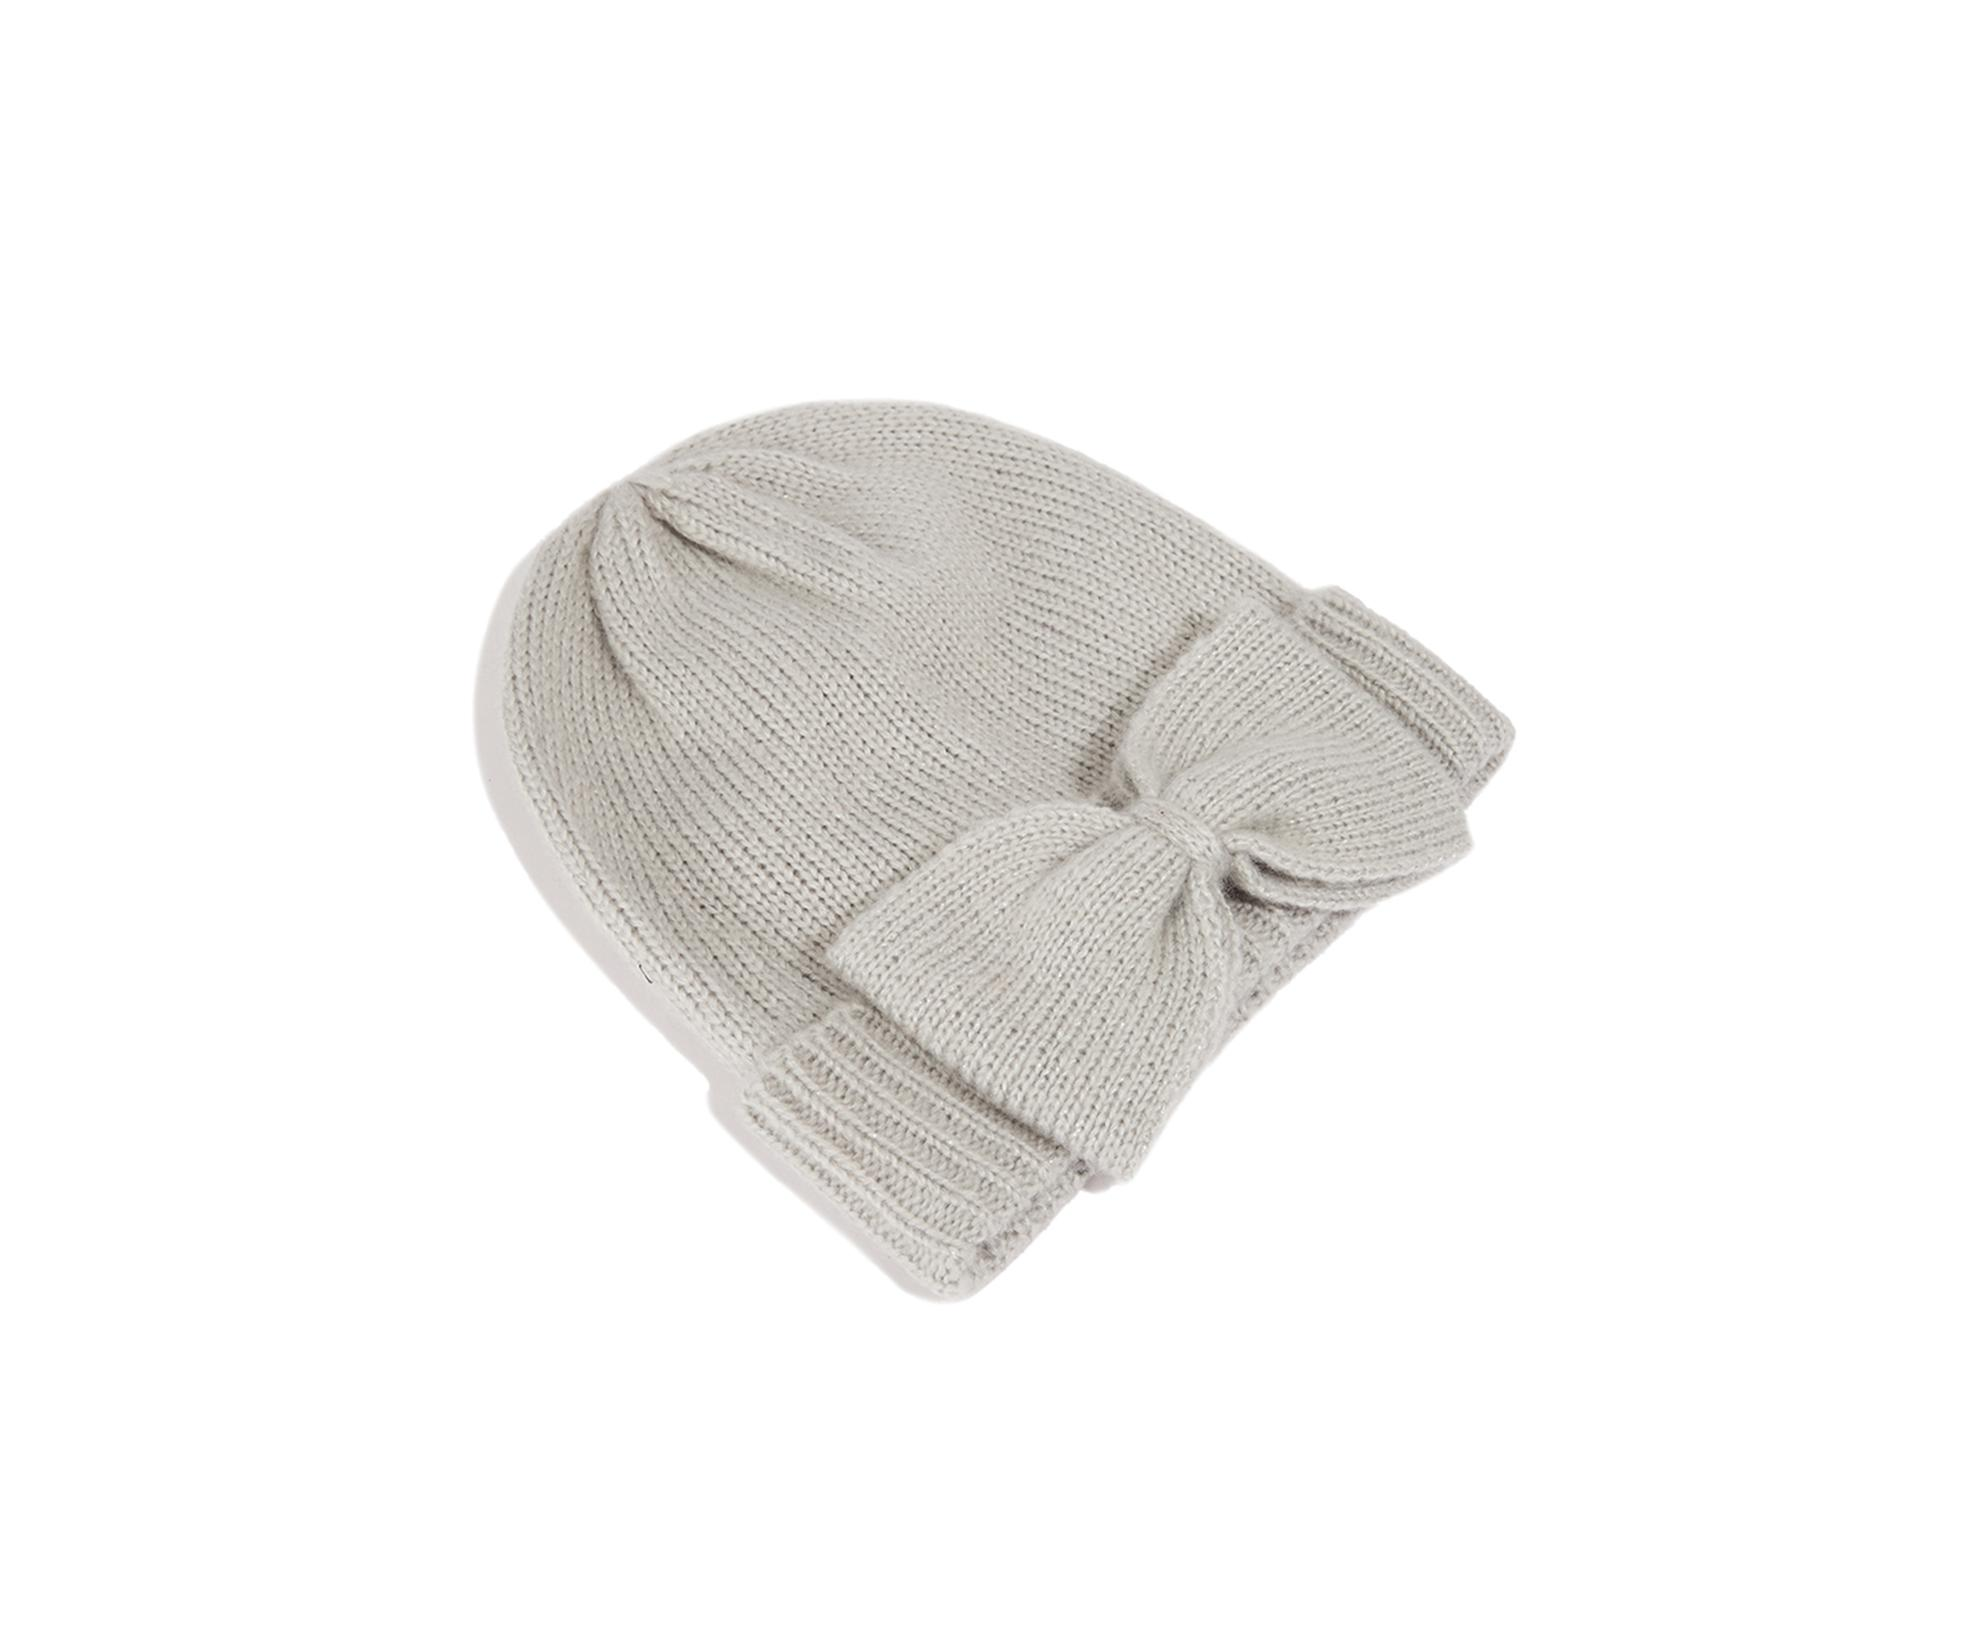 29328d84c41 Lyst - Oasis Bow Knitted Beanie Hat in Gray